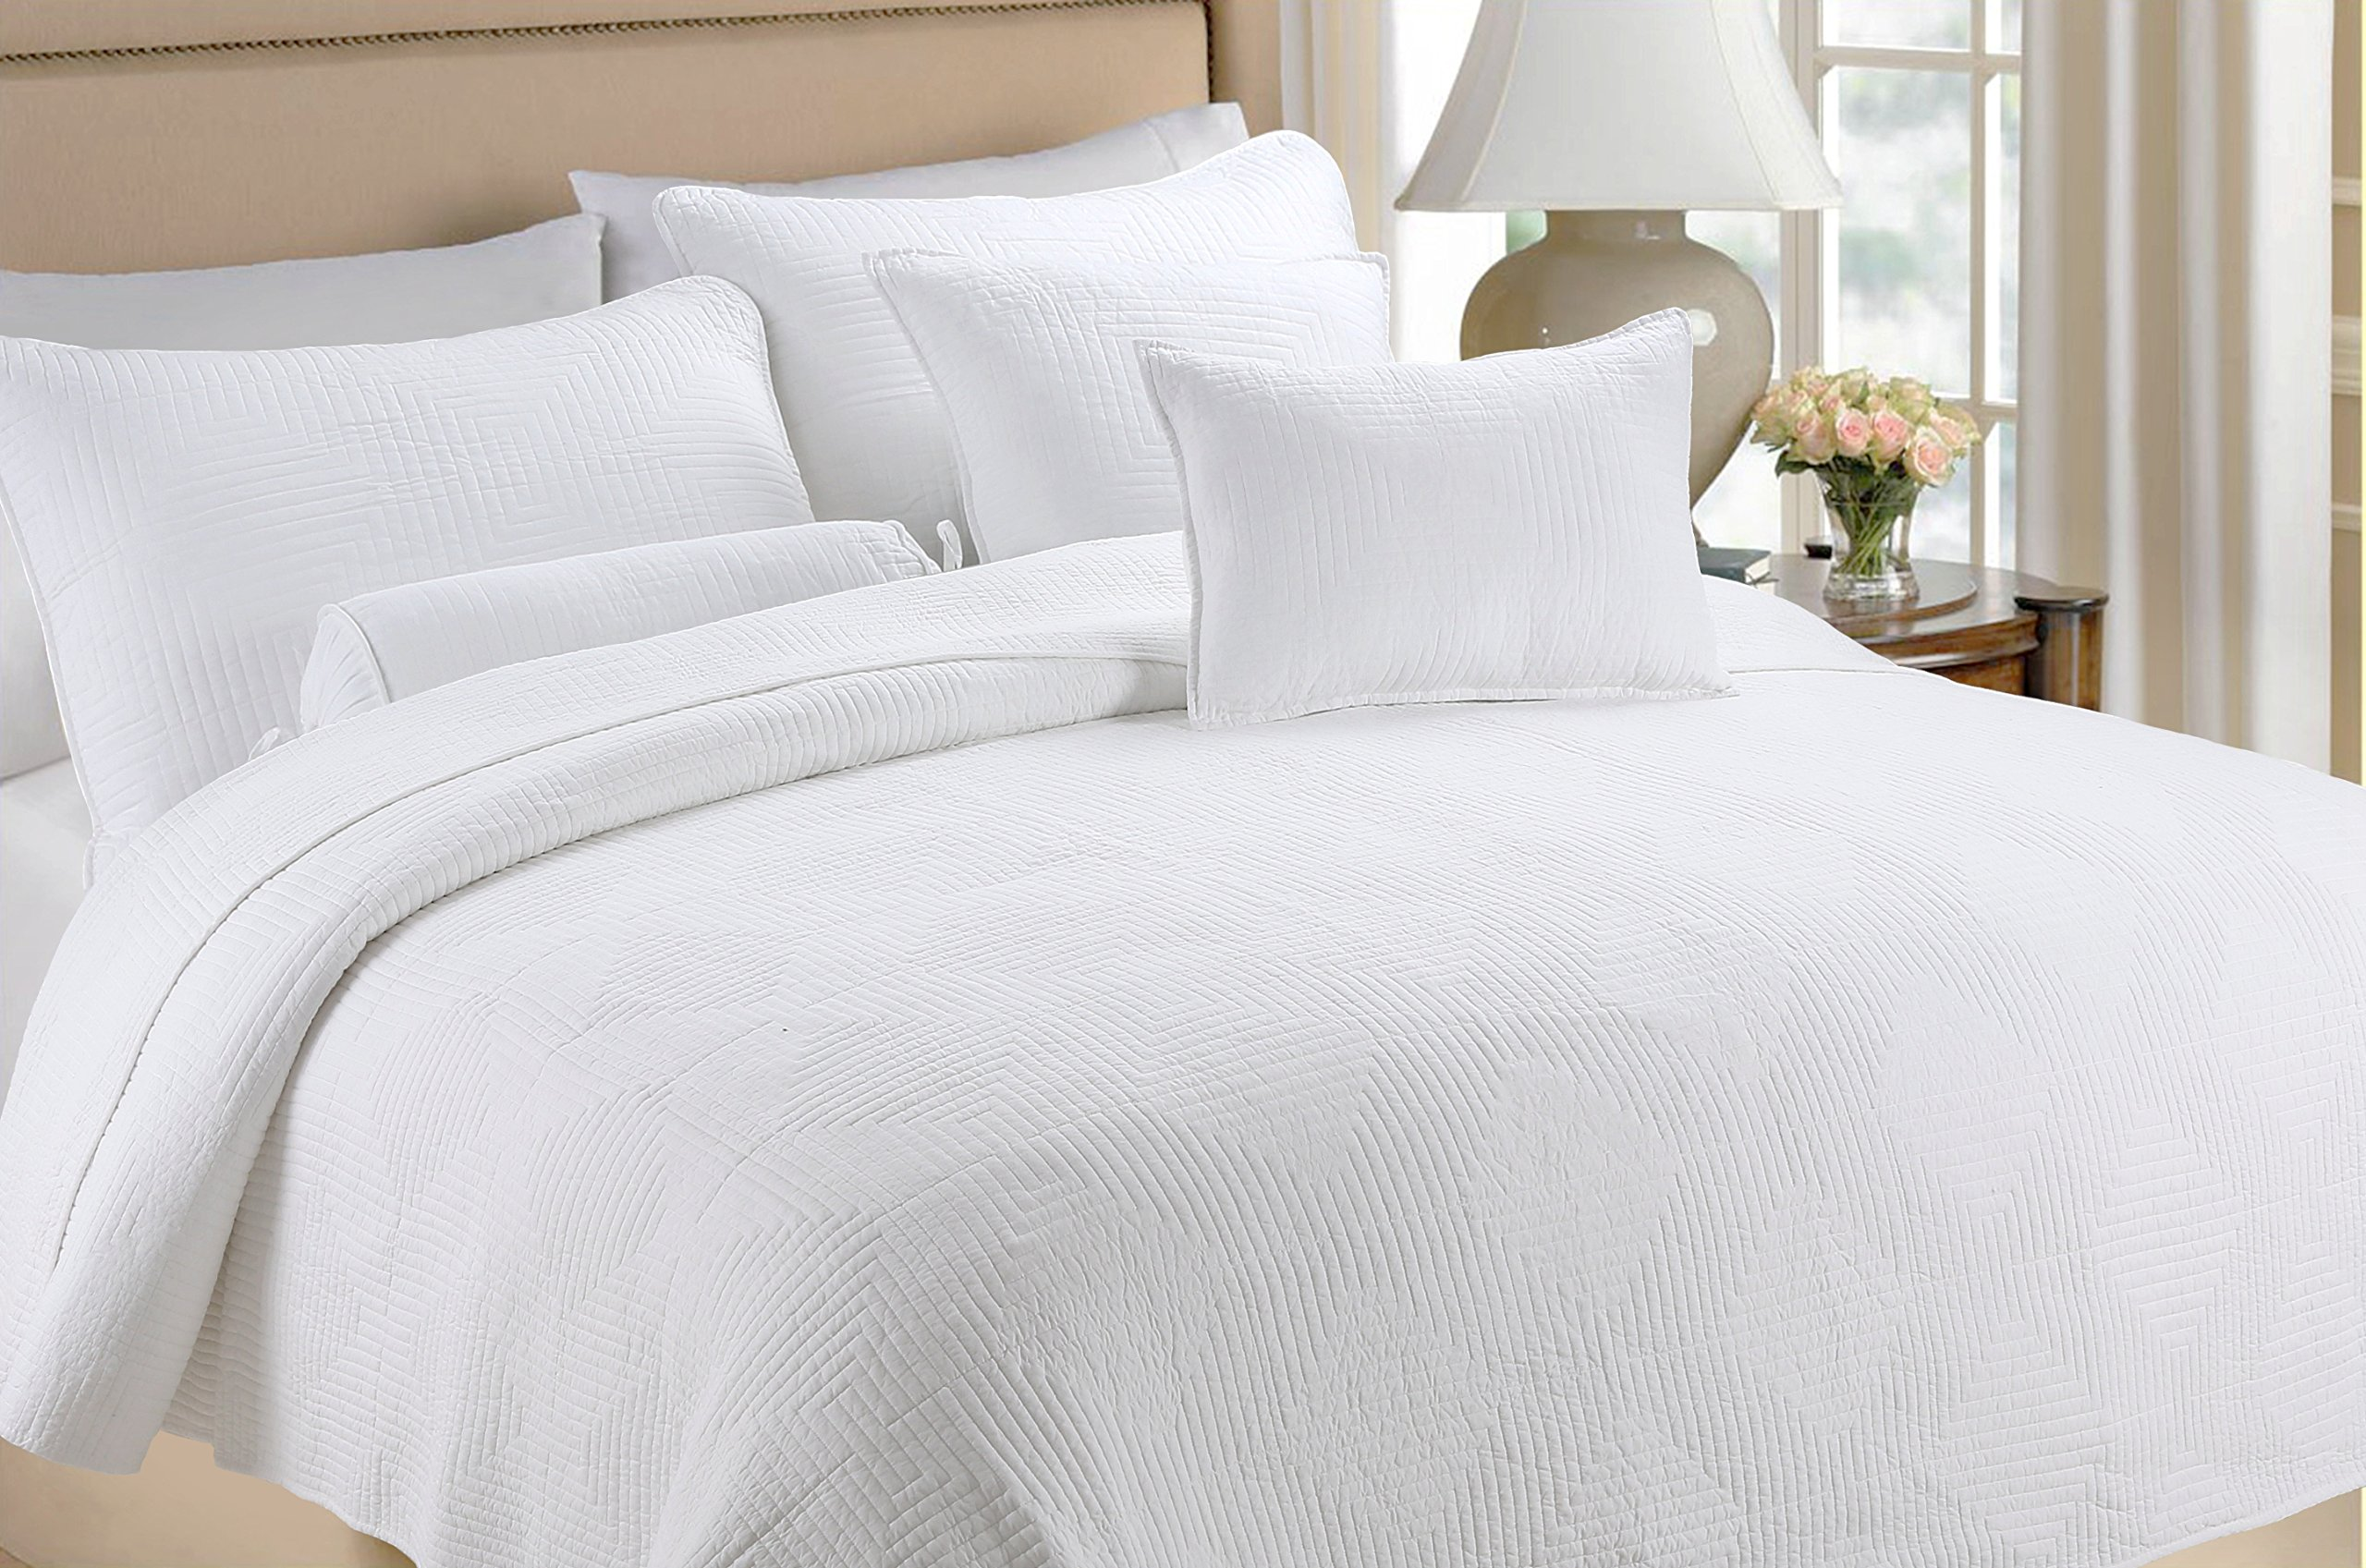 Cozy Line Home Fashions 100% Cotton Solid White Maze Hotel Quilt Set, Reversible Bedding Bedspread Coverlet,for Bedroom/Guestroom (Maze - White, Twin - 2 Piece)